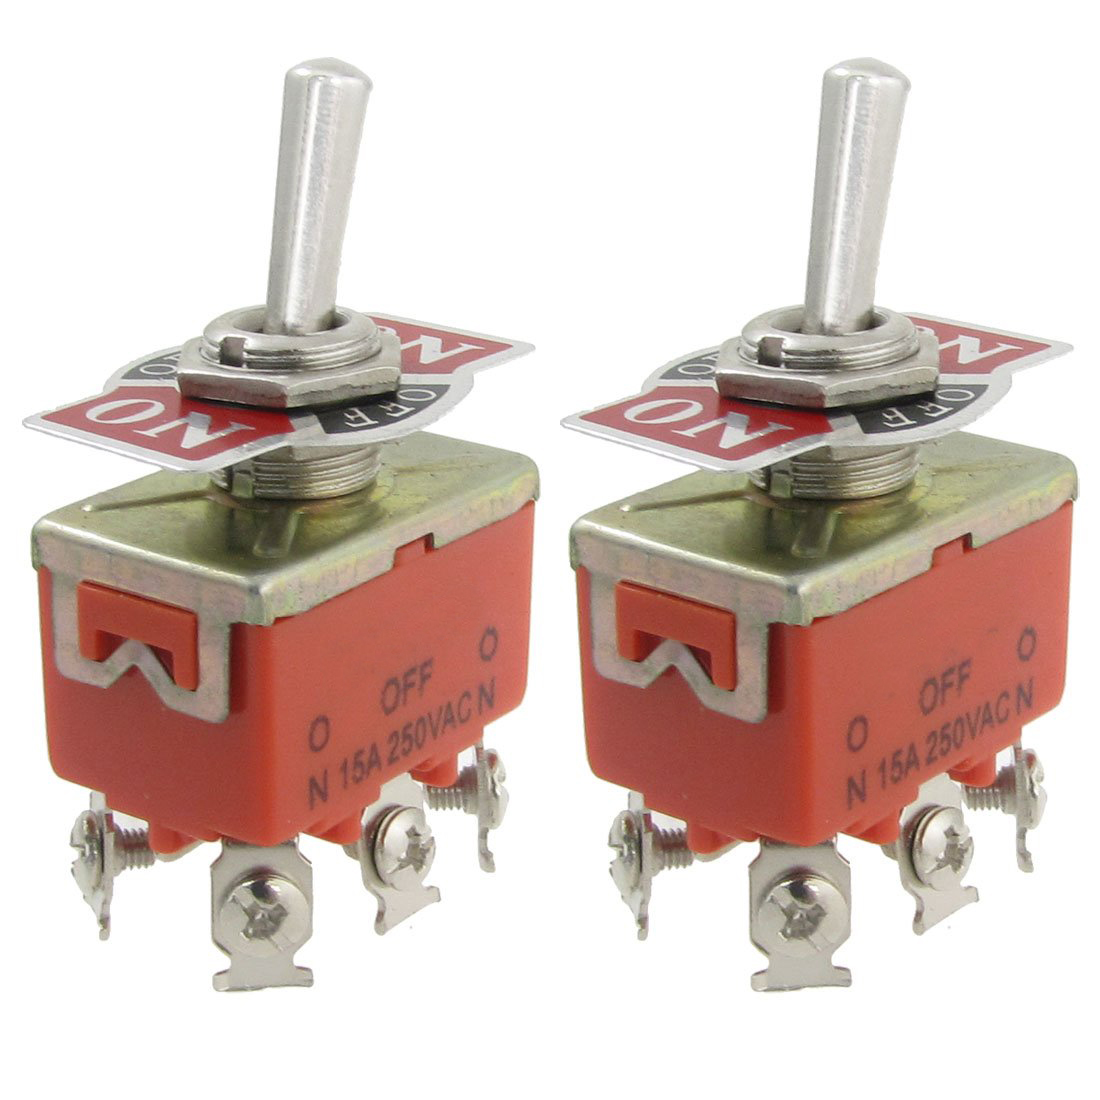 2 Pcs Ac 250v 15a Amps On/off/on 3 Position Dpdt Toggle Switch Big Clearance Sale Lighting Accessories Switches